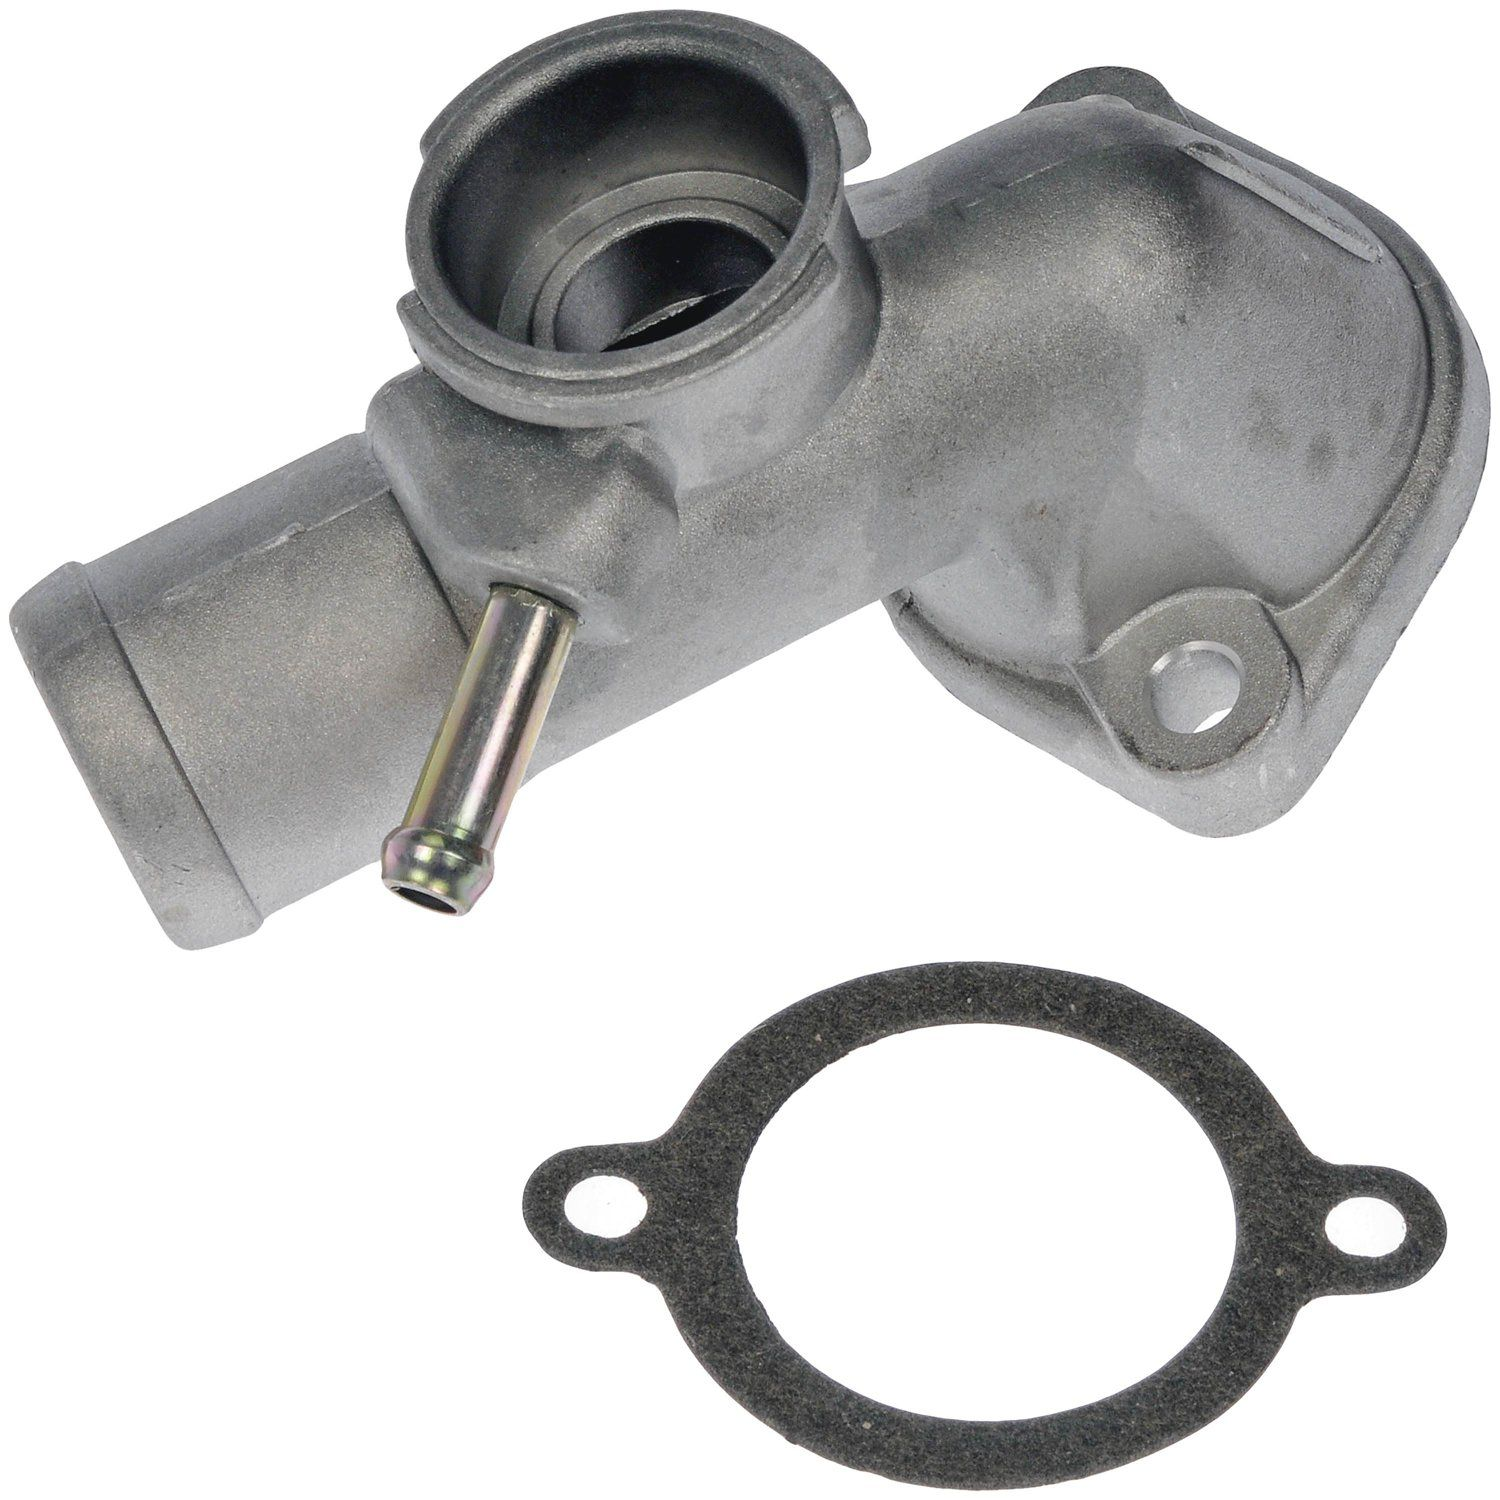 1990 Plymouth Laser Engine Coolant Thermostat Housing - N/A 4 Cyl 2.0L  (Dorman 902-3025)